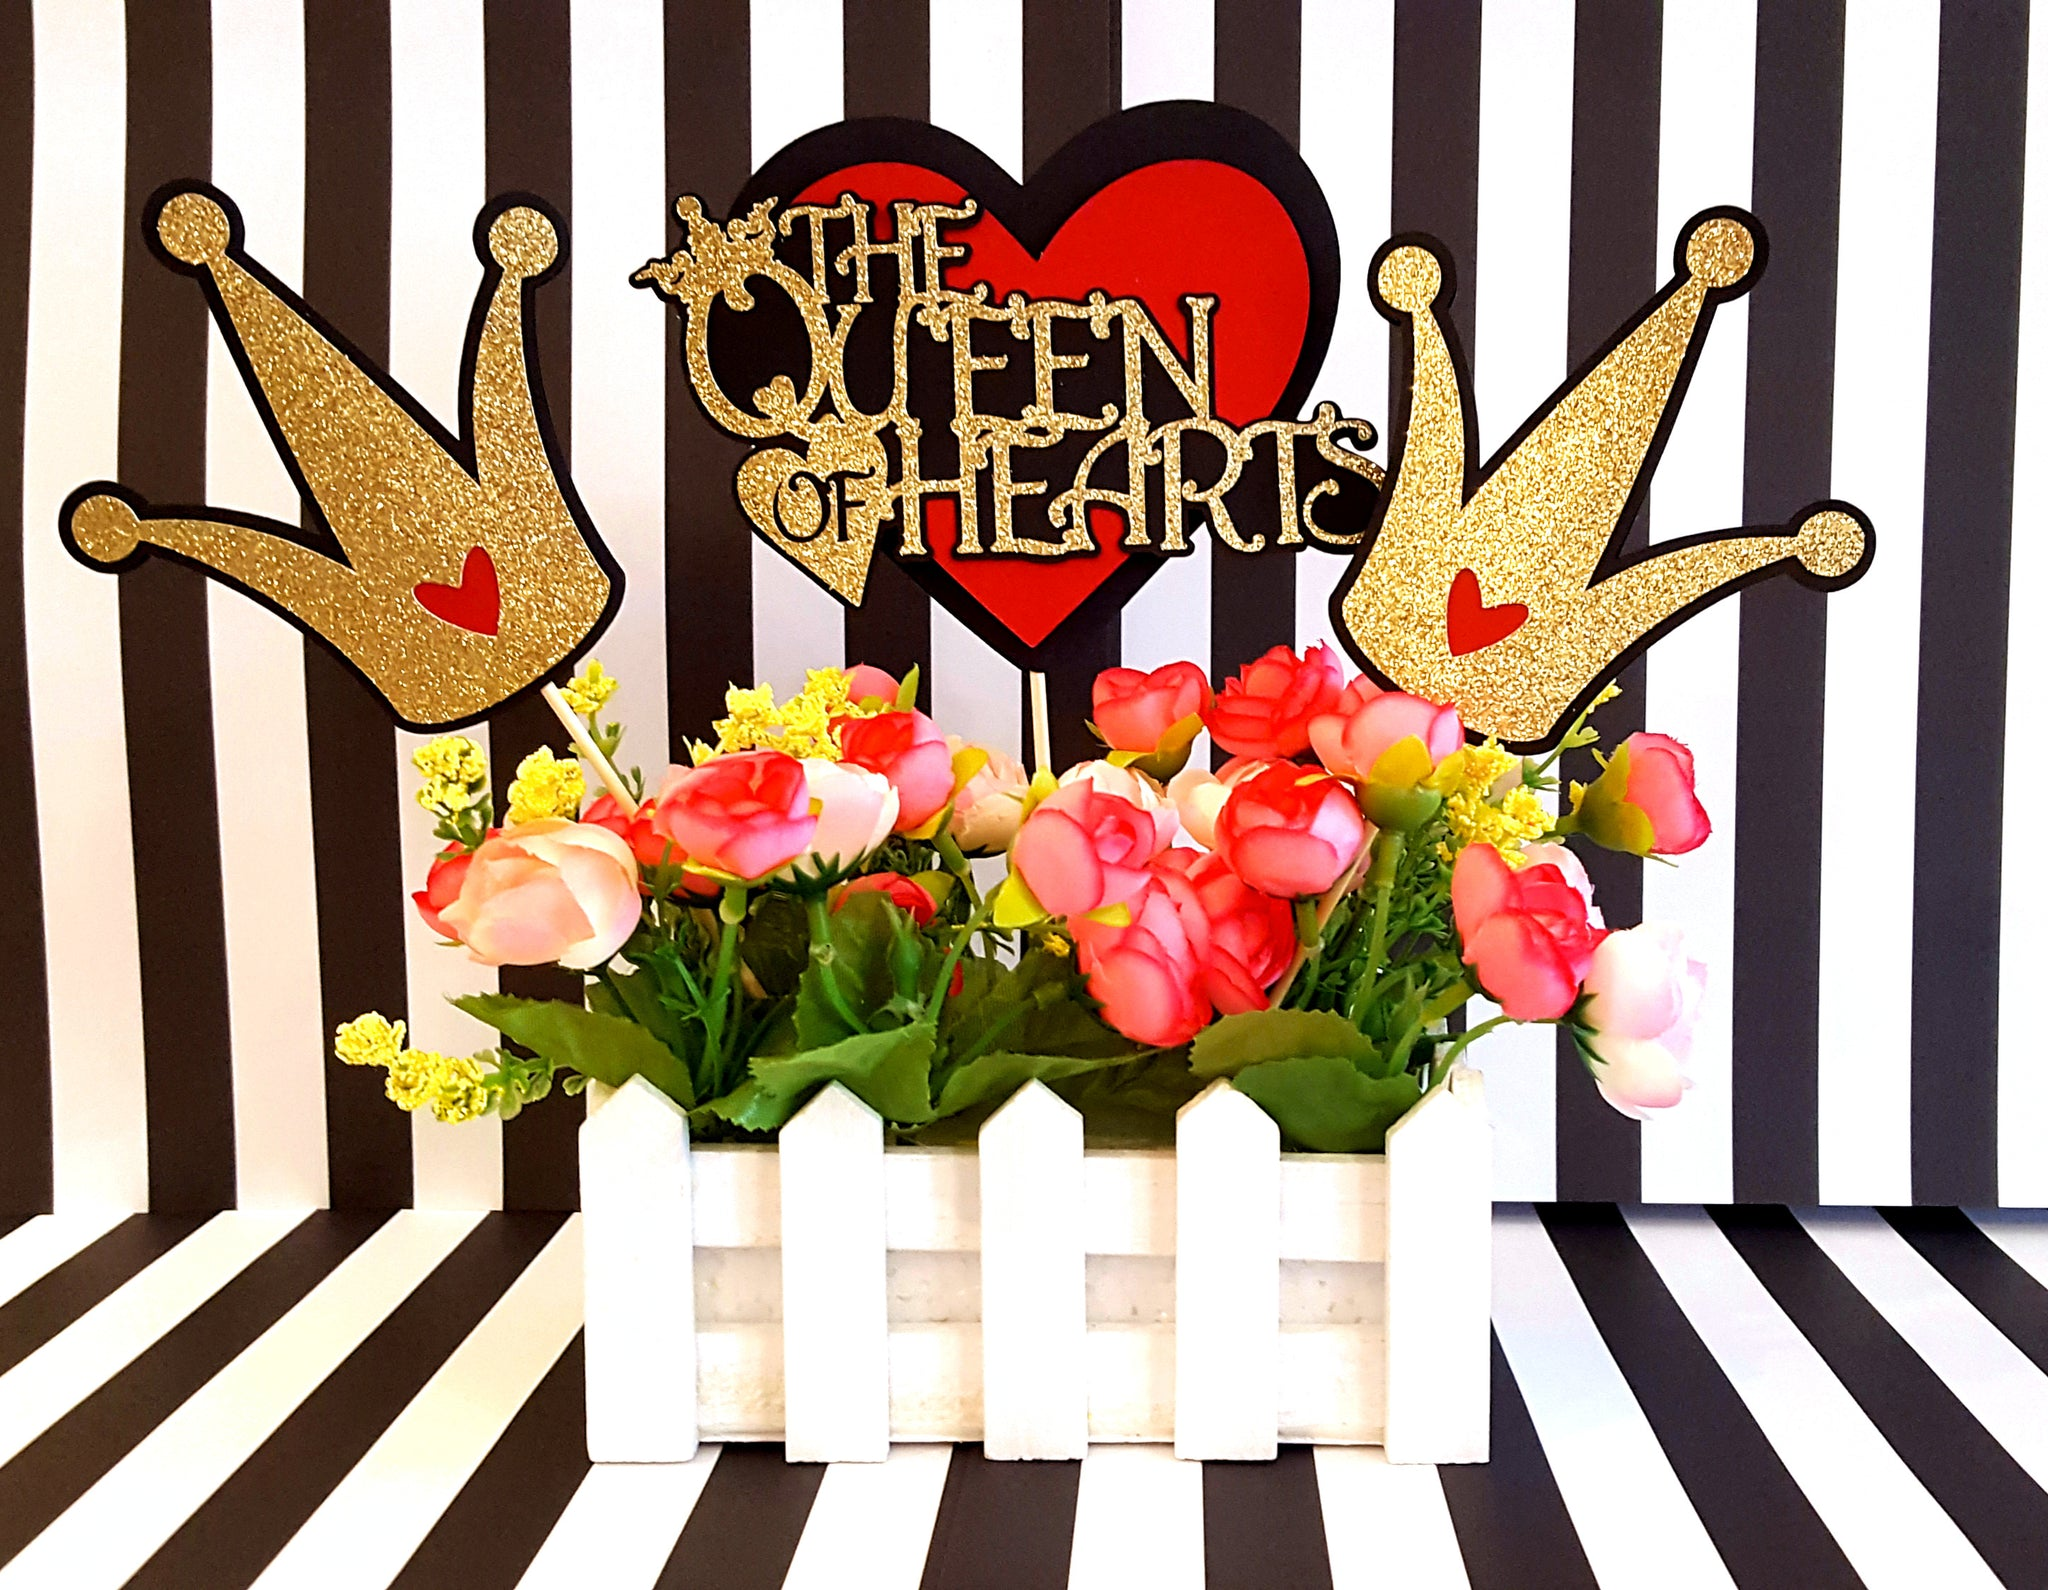 Queen of Hearts Centerpiece Set or Table Decor in Red, Black, White, and Gold for Birthday Party or Photo Prop